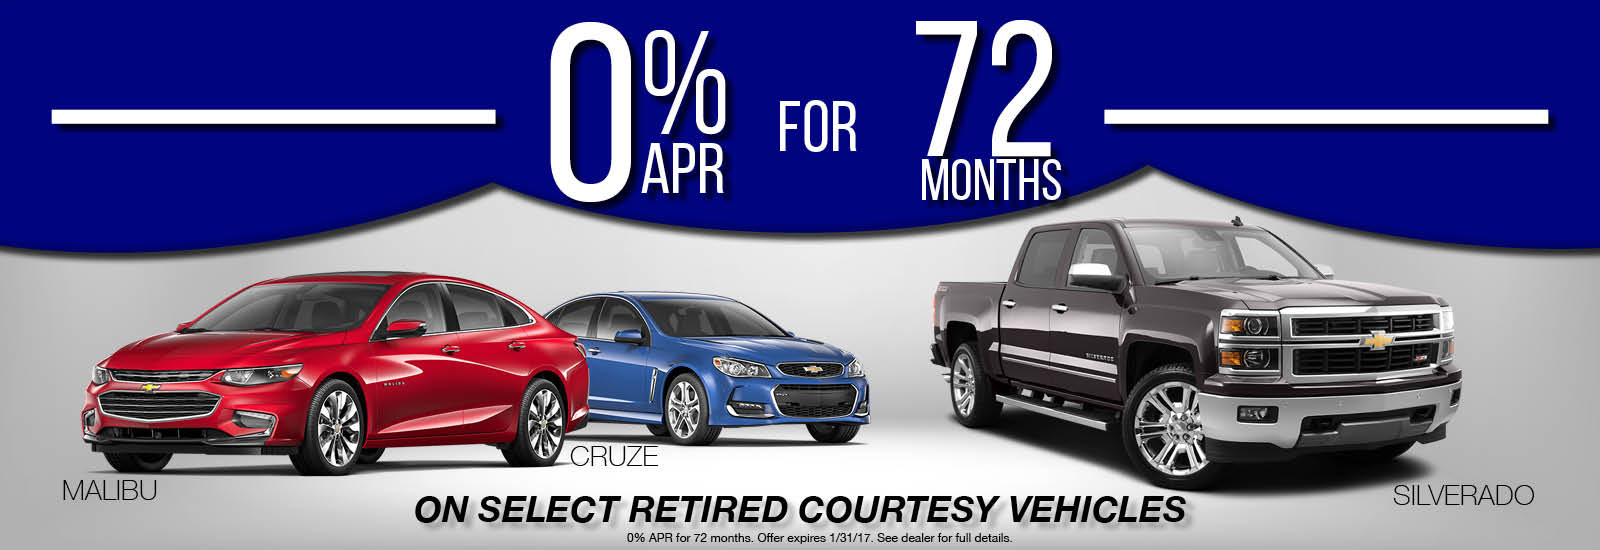 Ray Skillman Chevy >> Chevrolet Dealer in Indianapolis, IN | Ray Skillman Chevrolet